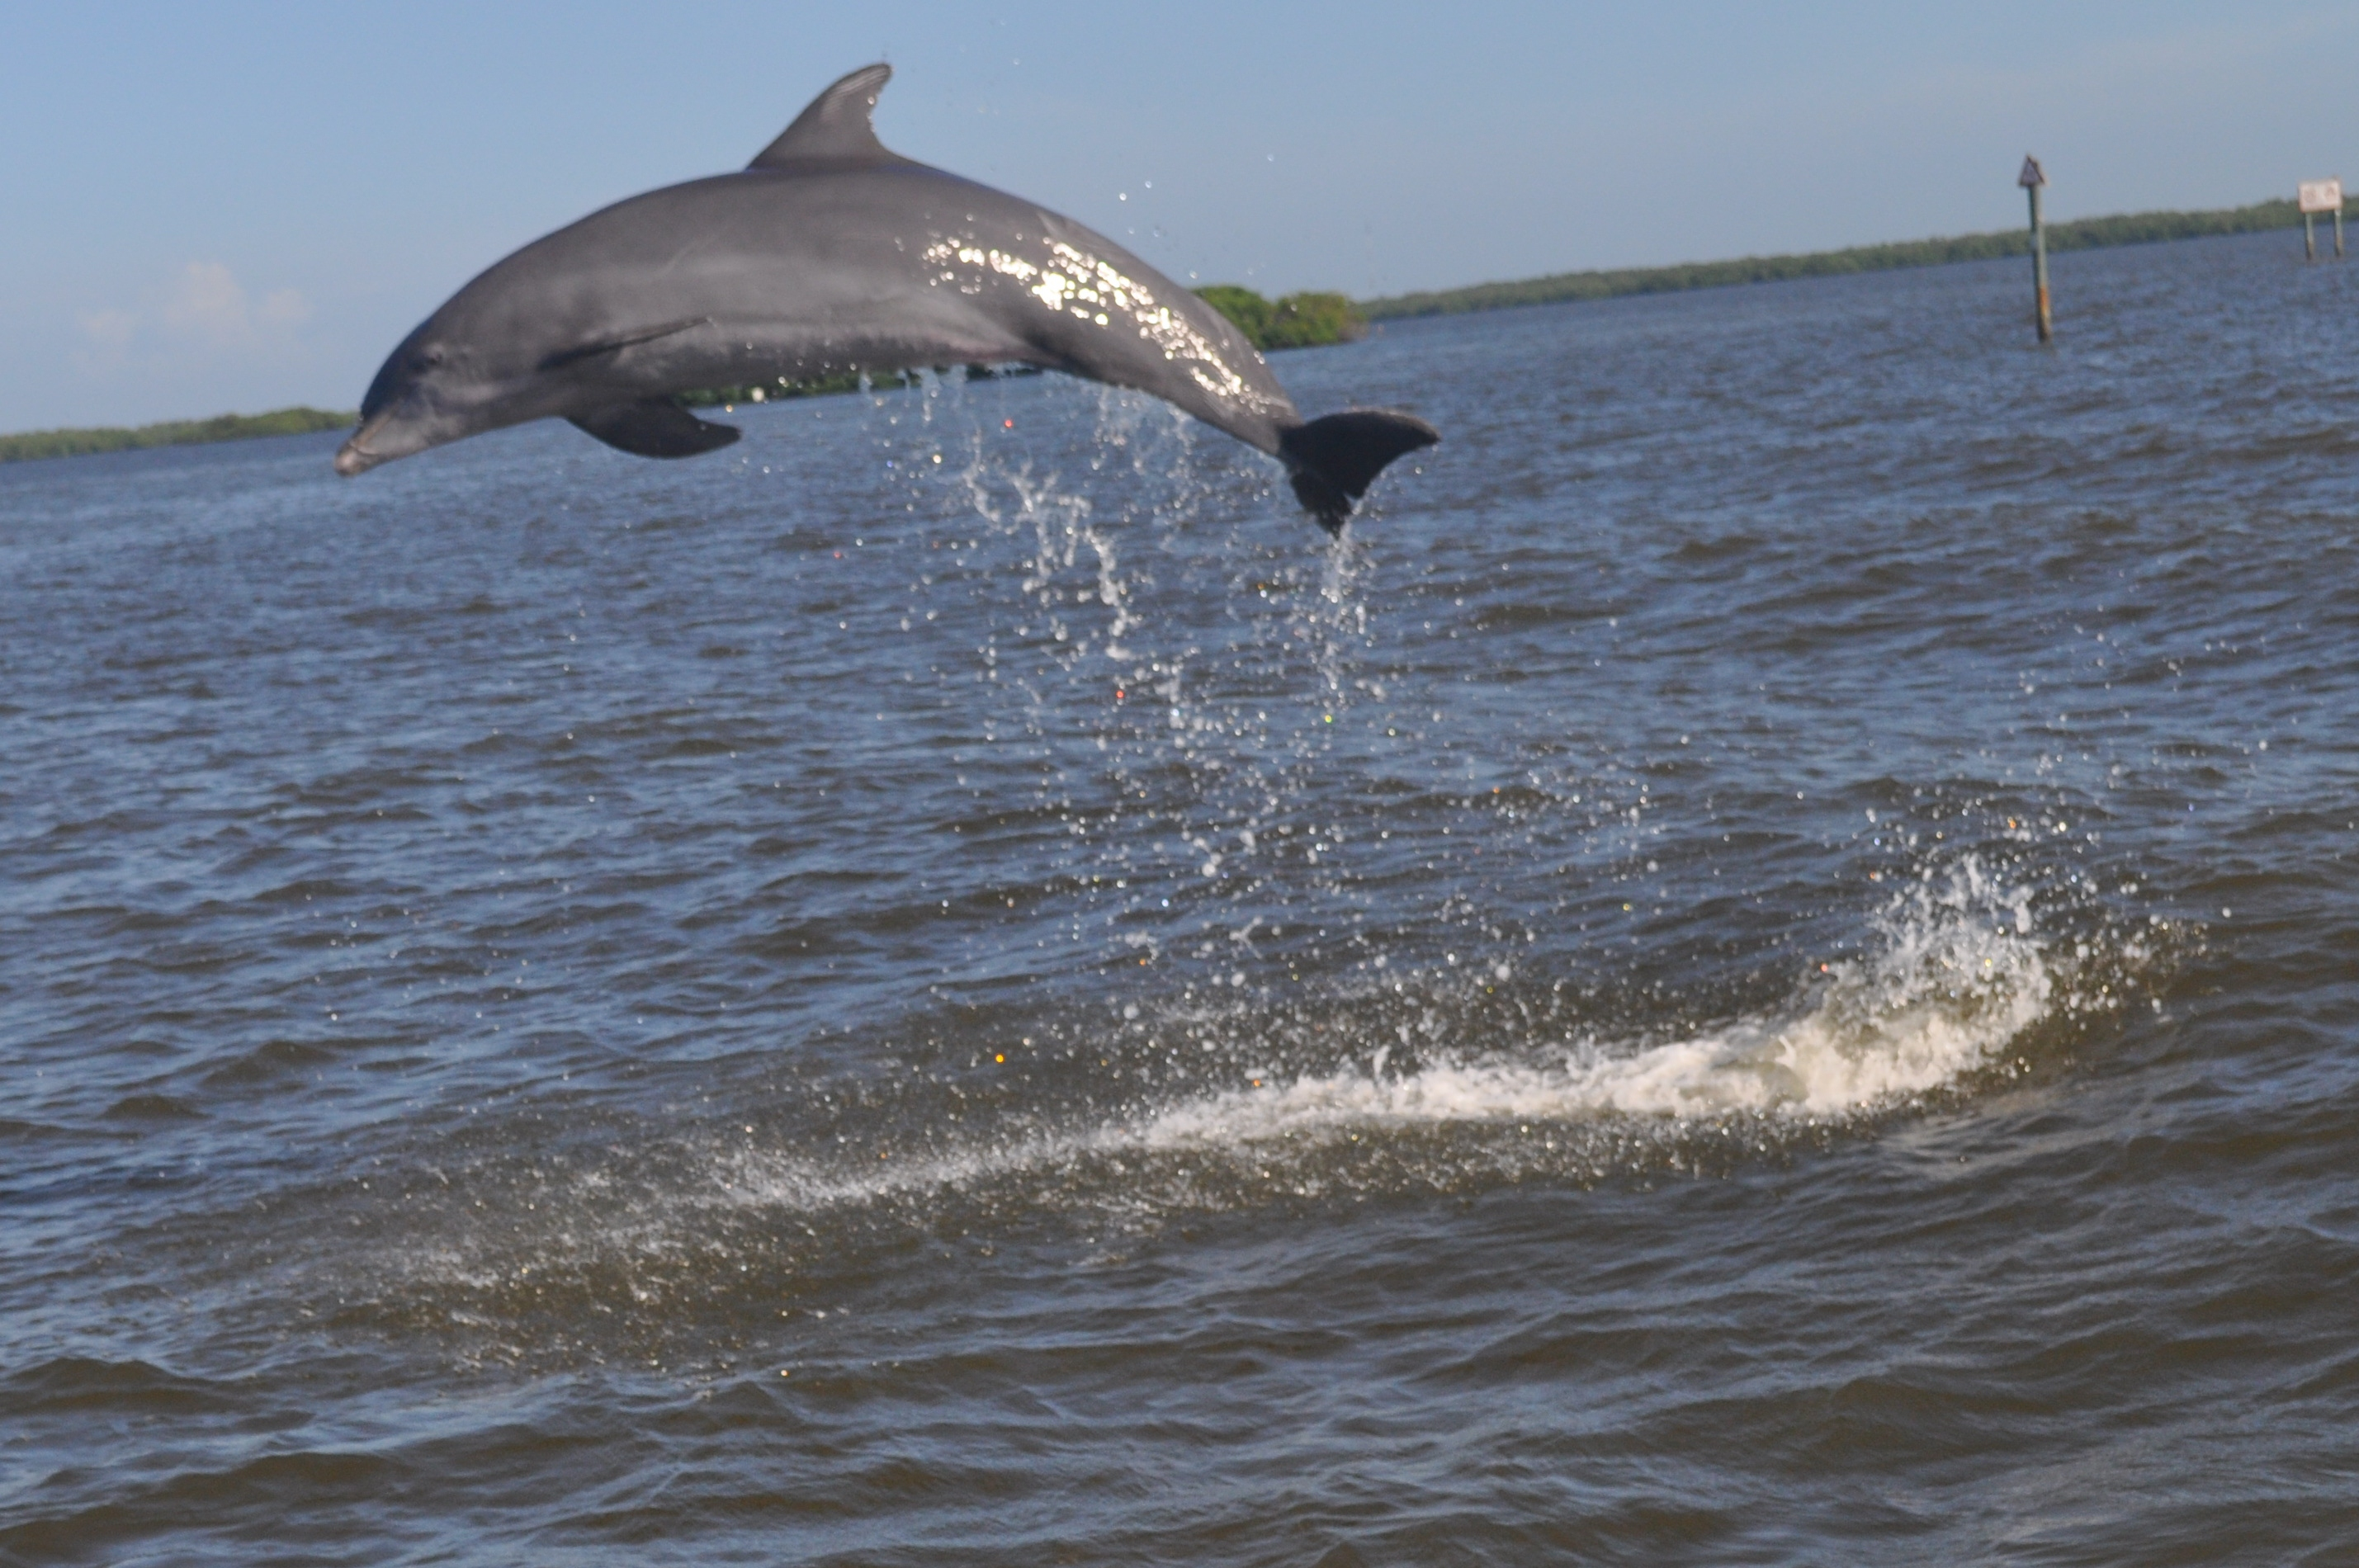 Fort myers beach dolphin cruise and fishing charter good for Fort myers fishing